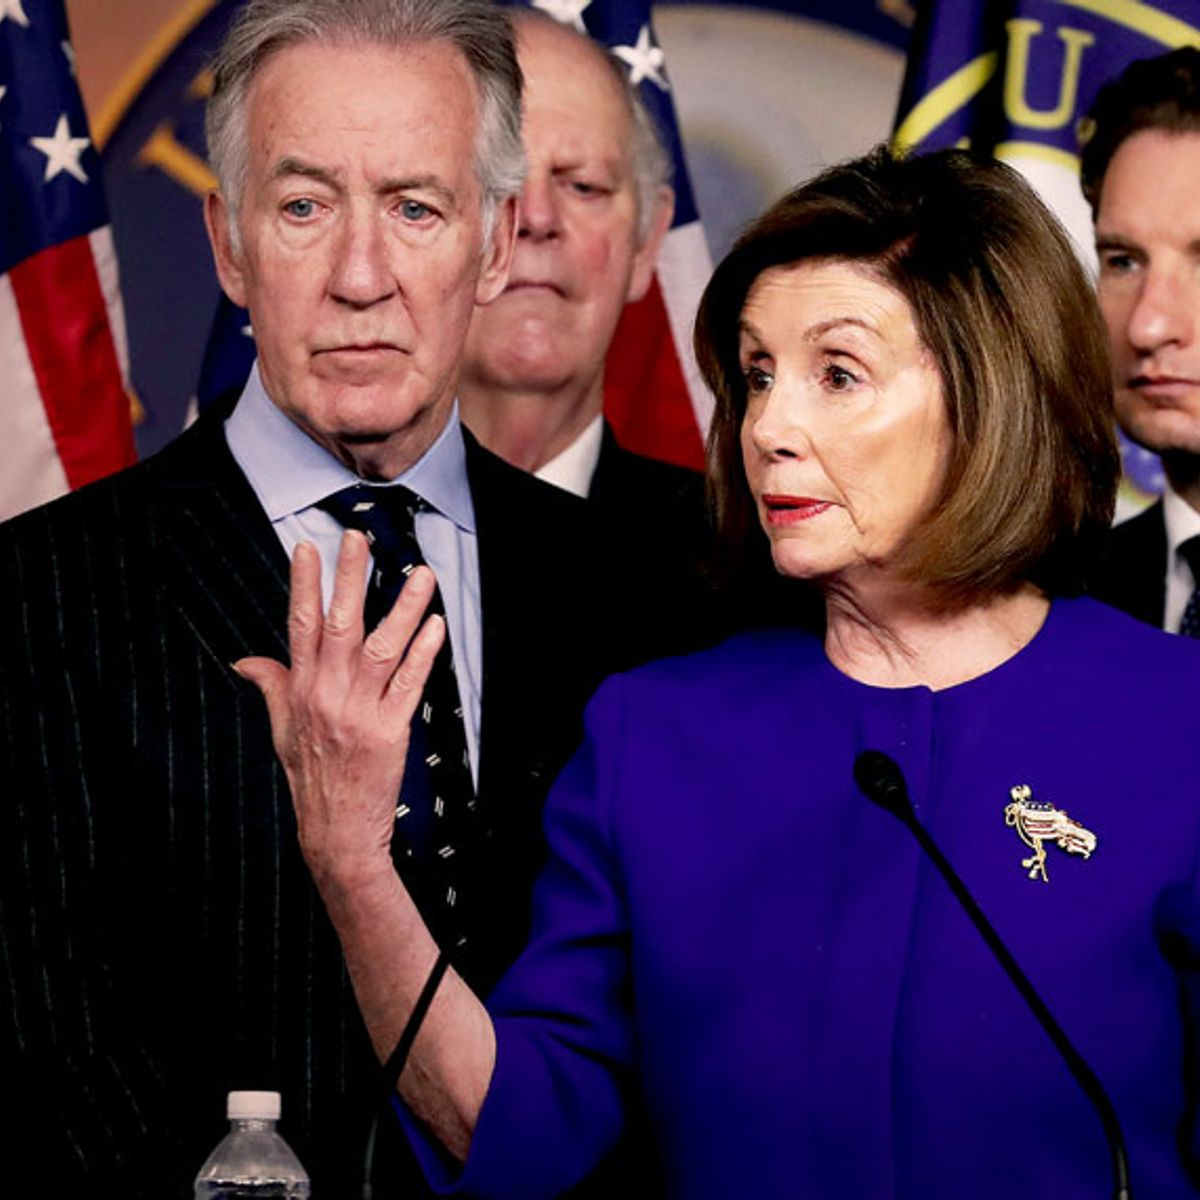 Don't panic! Yeah, Pelosi struck a trade deal with Trump. That's just smart politics